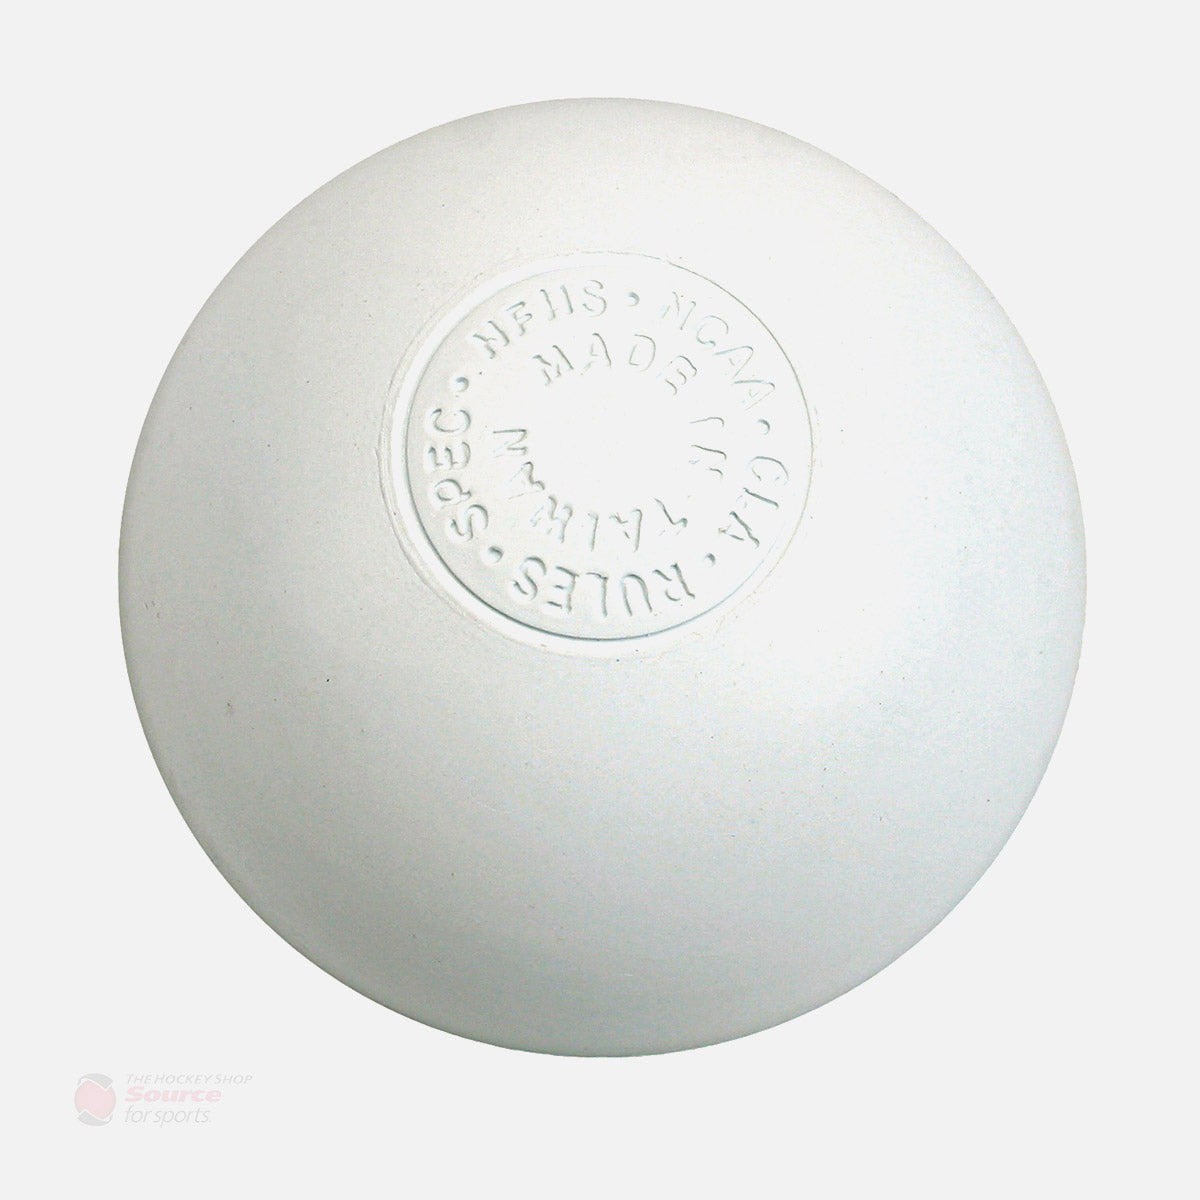 Official Lacrosse Ball